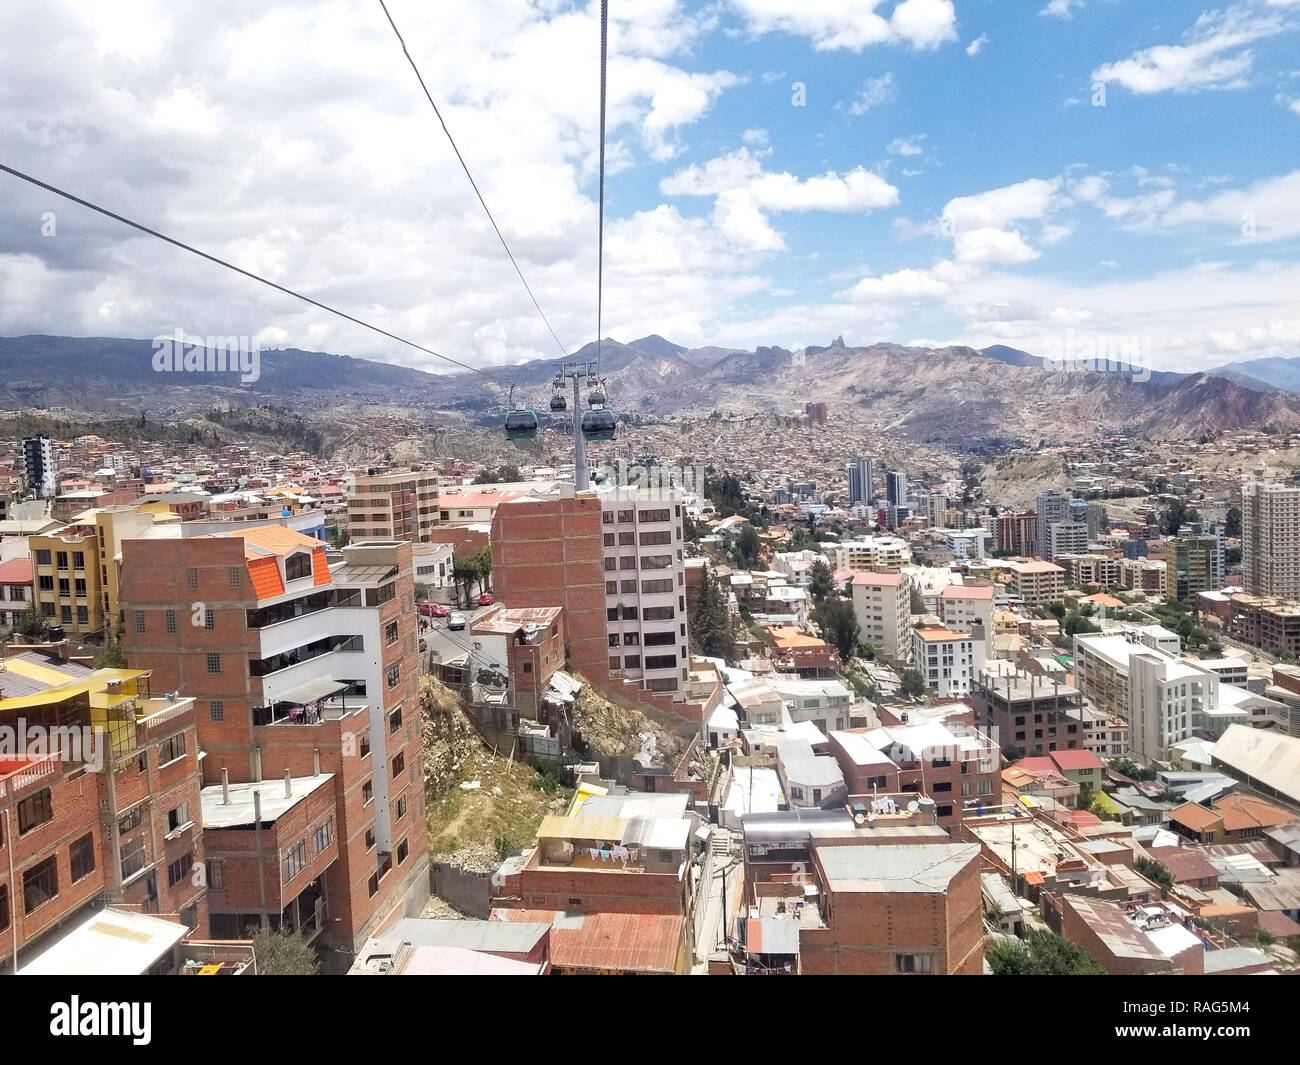 Aerial view of La Paz, Bolivia from a cable car. City center. South America - Stock Image